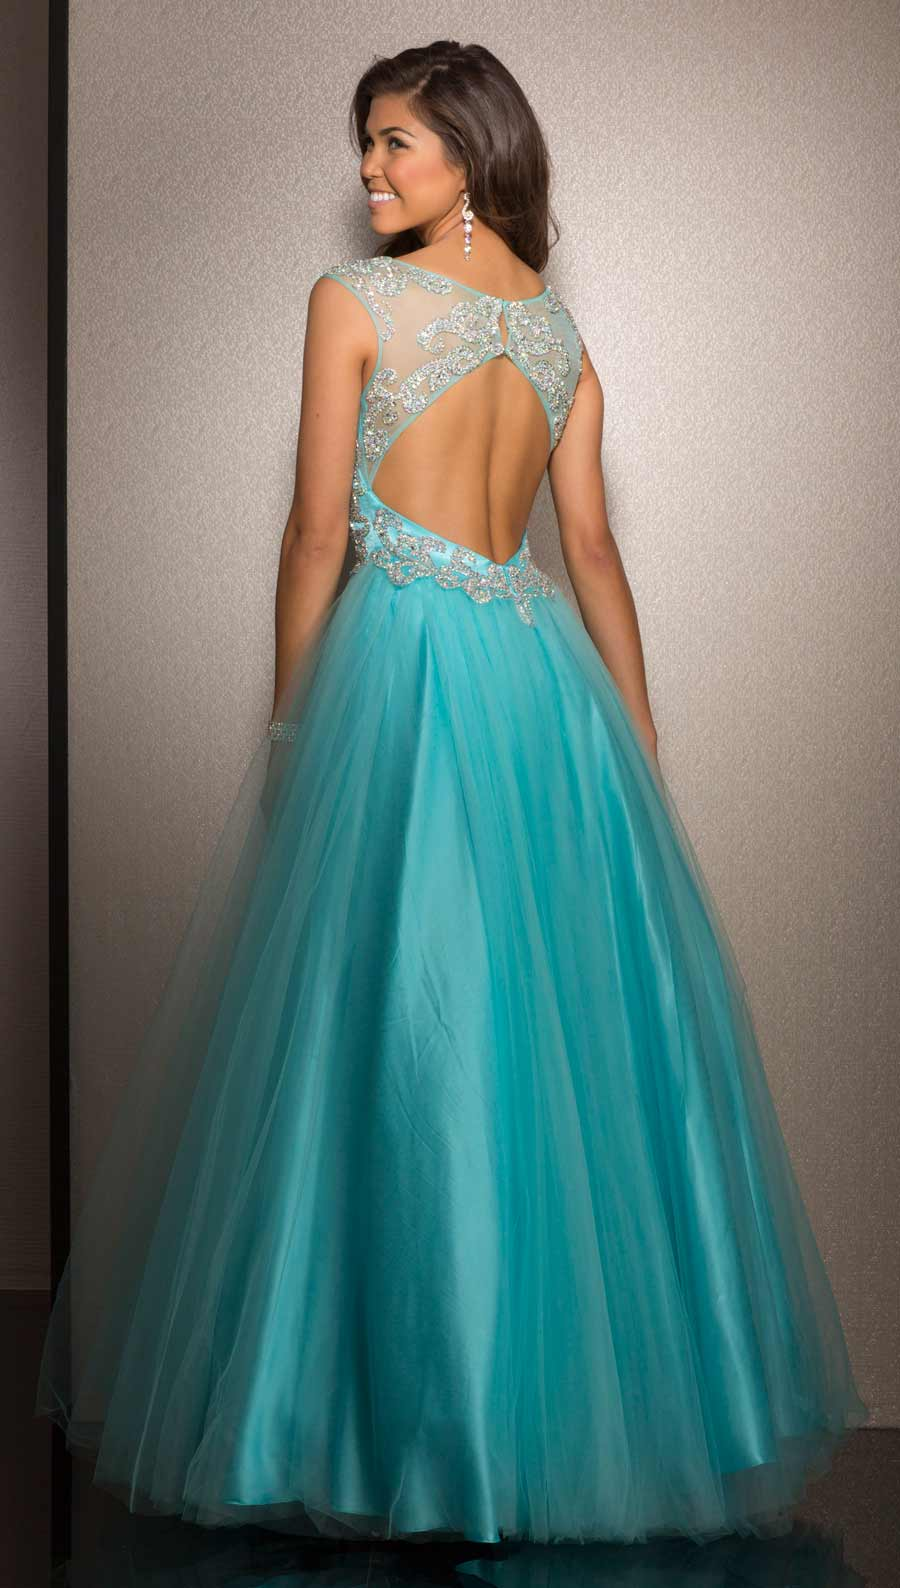 Beautiful Prom Dress Stores In Roanoke Va Illustration - All Wedding ...